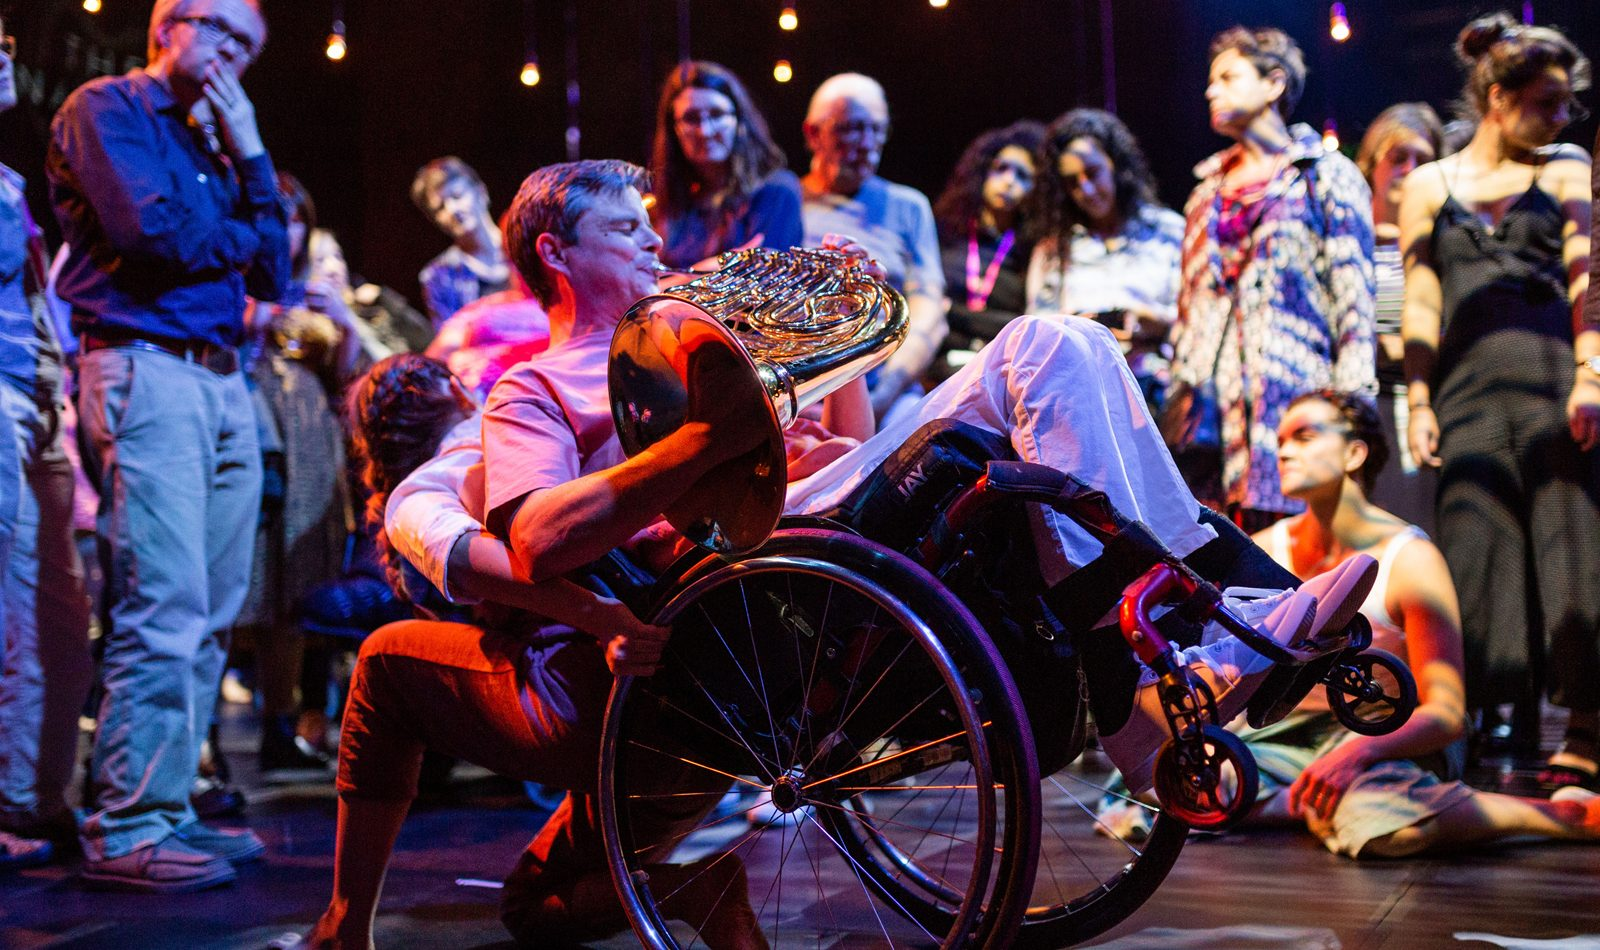 A male french horn player plays amongst an audience on stage. A partially obscured femal dancer takes the weight of his wheelchair, tipping him back so that he is on two wheels.